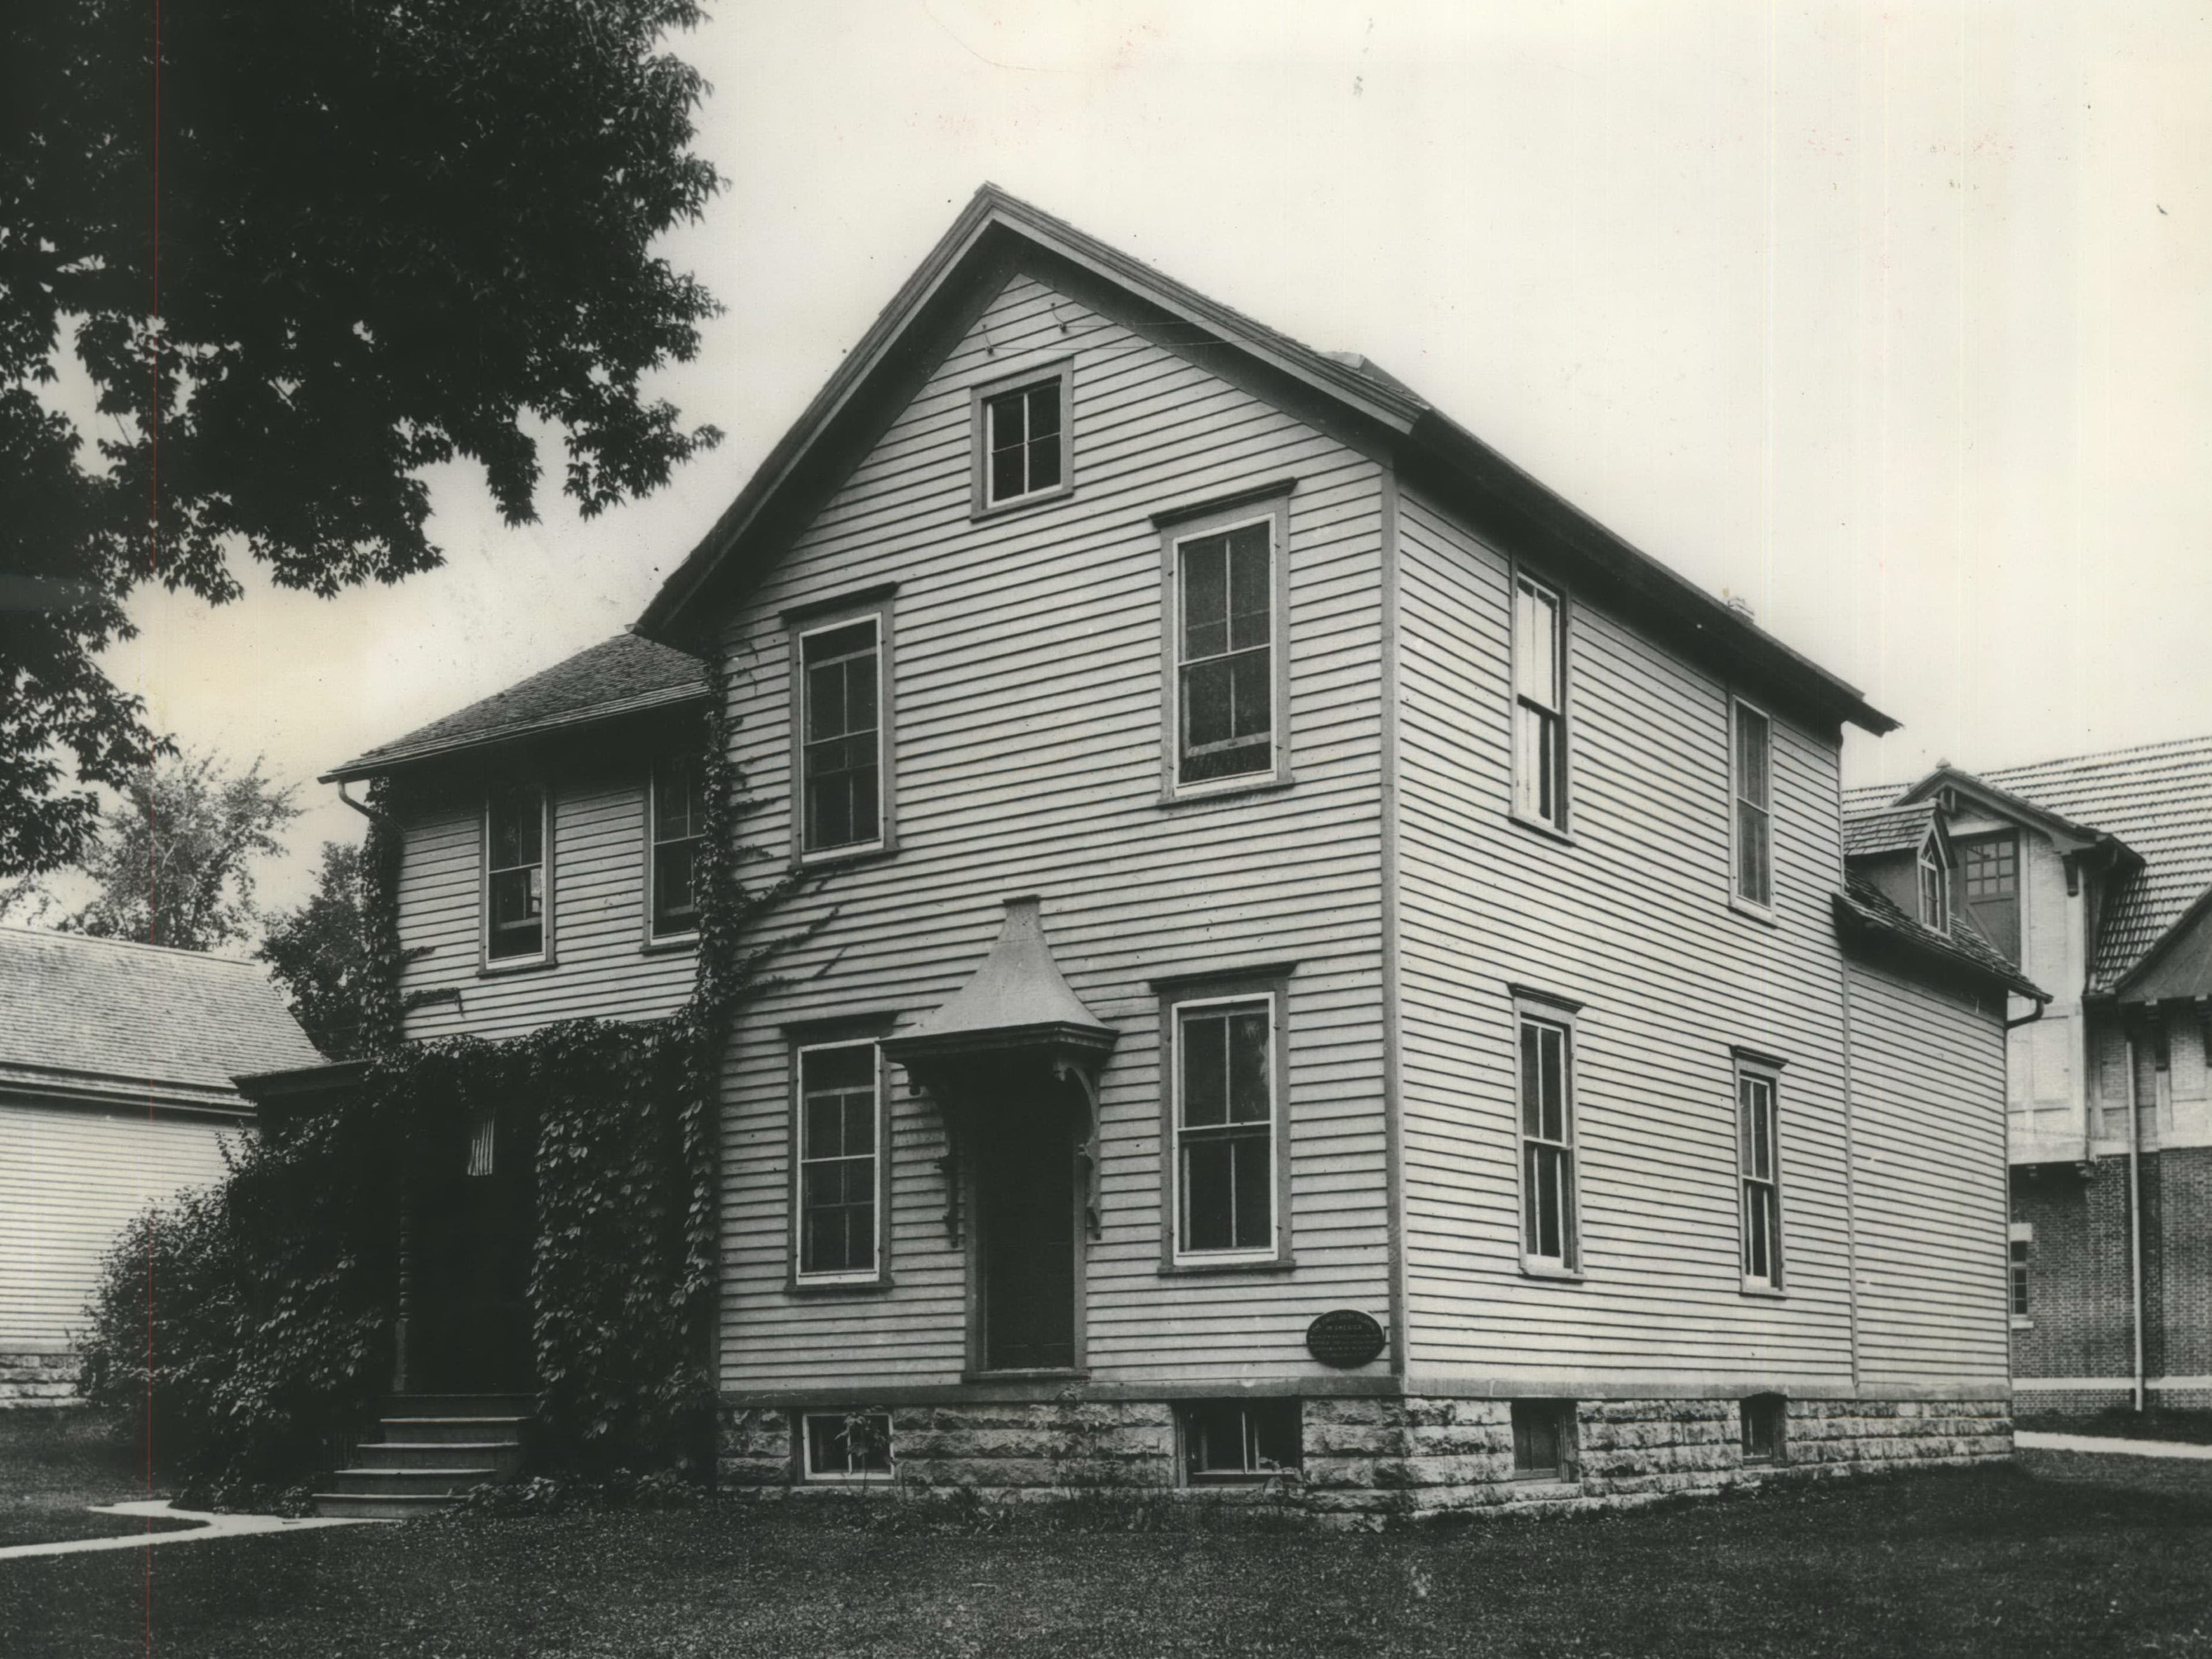 University of Wisconsin gave us America's first dairy school. Instruction was held in this building in 1890. Soon after, state farms saw progress in dairy herd care. The building was torn down in 1950.